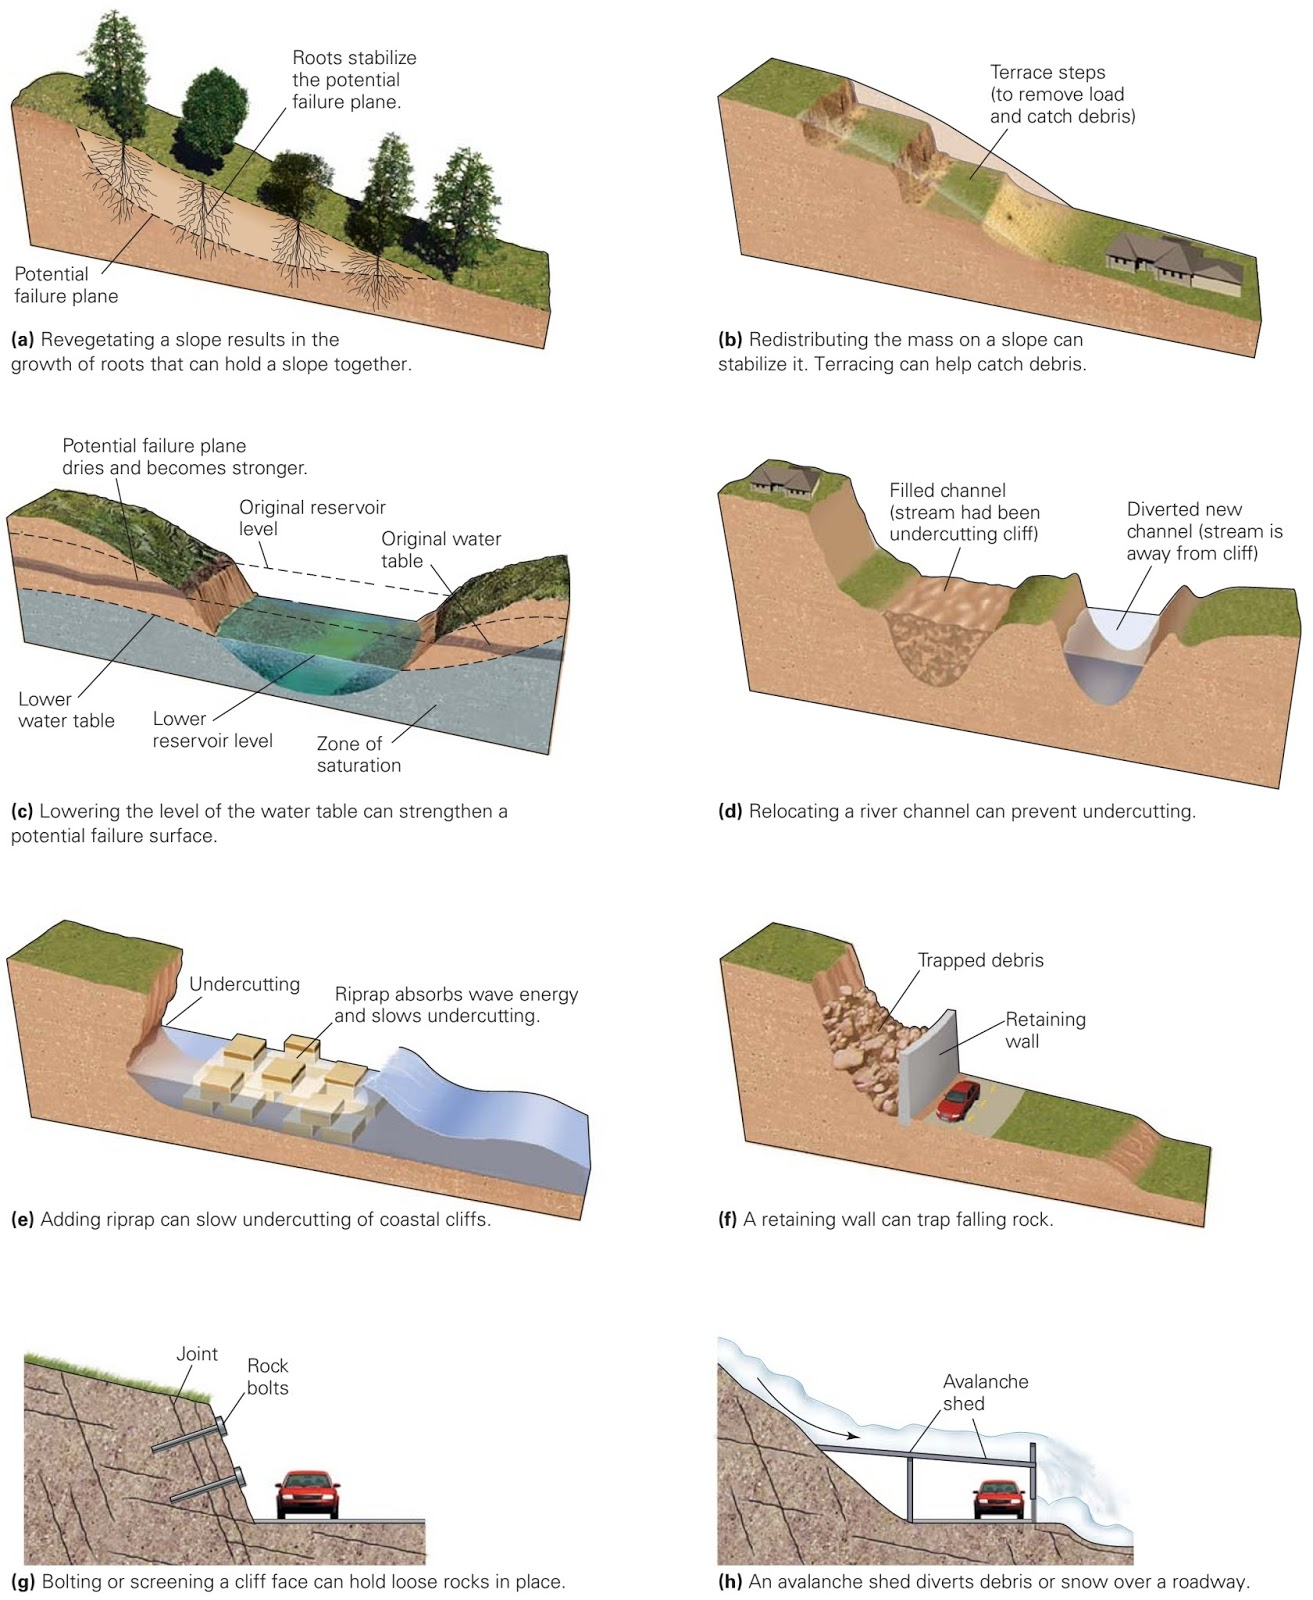 mass wasting Mass wasting is caused by weathering and gravity mass wasting is when soil, rock and sediment move downslope in a mass, usually due to the forces of gravity pulling weathered rock.